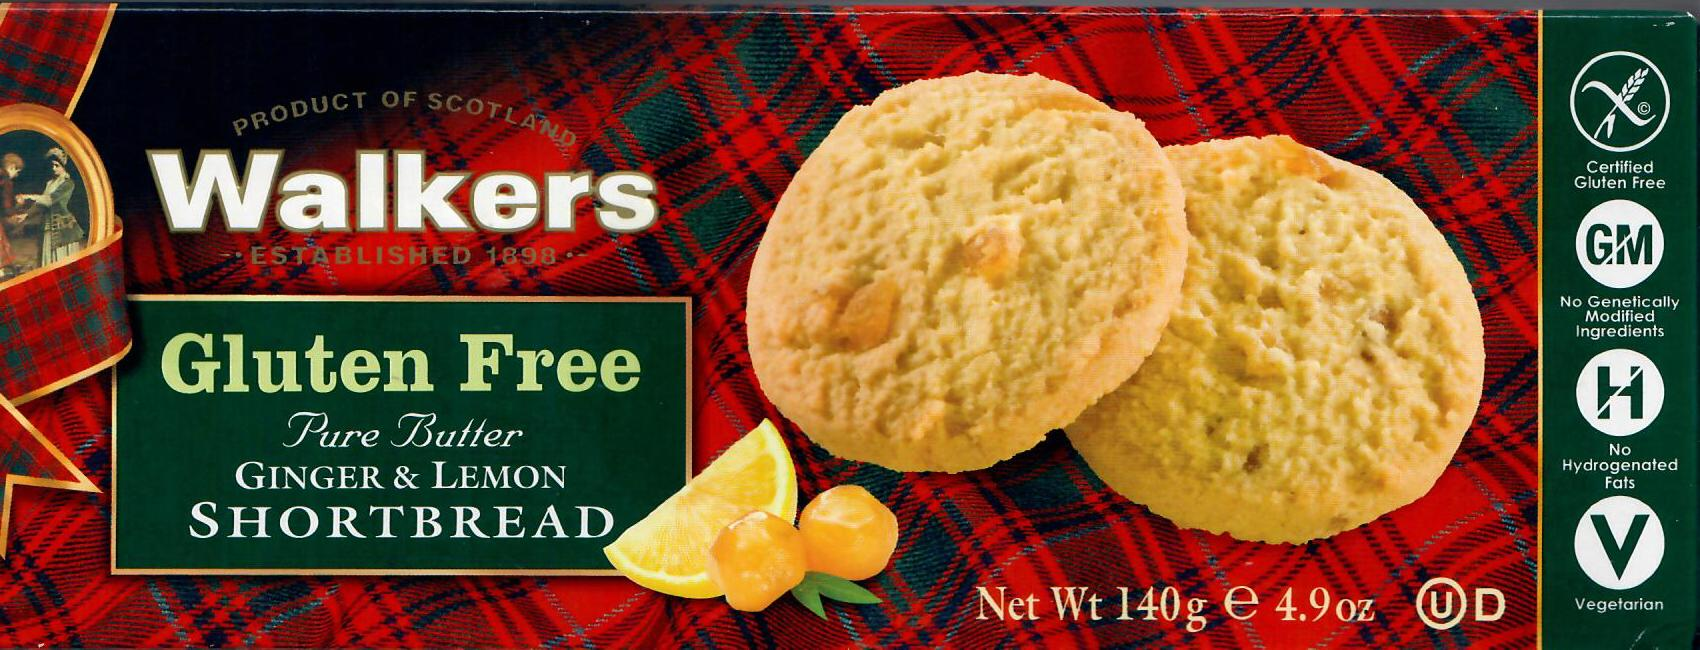 Walkers Ginger and Lemon Shortbread Cookies